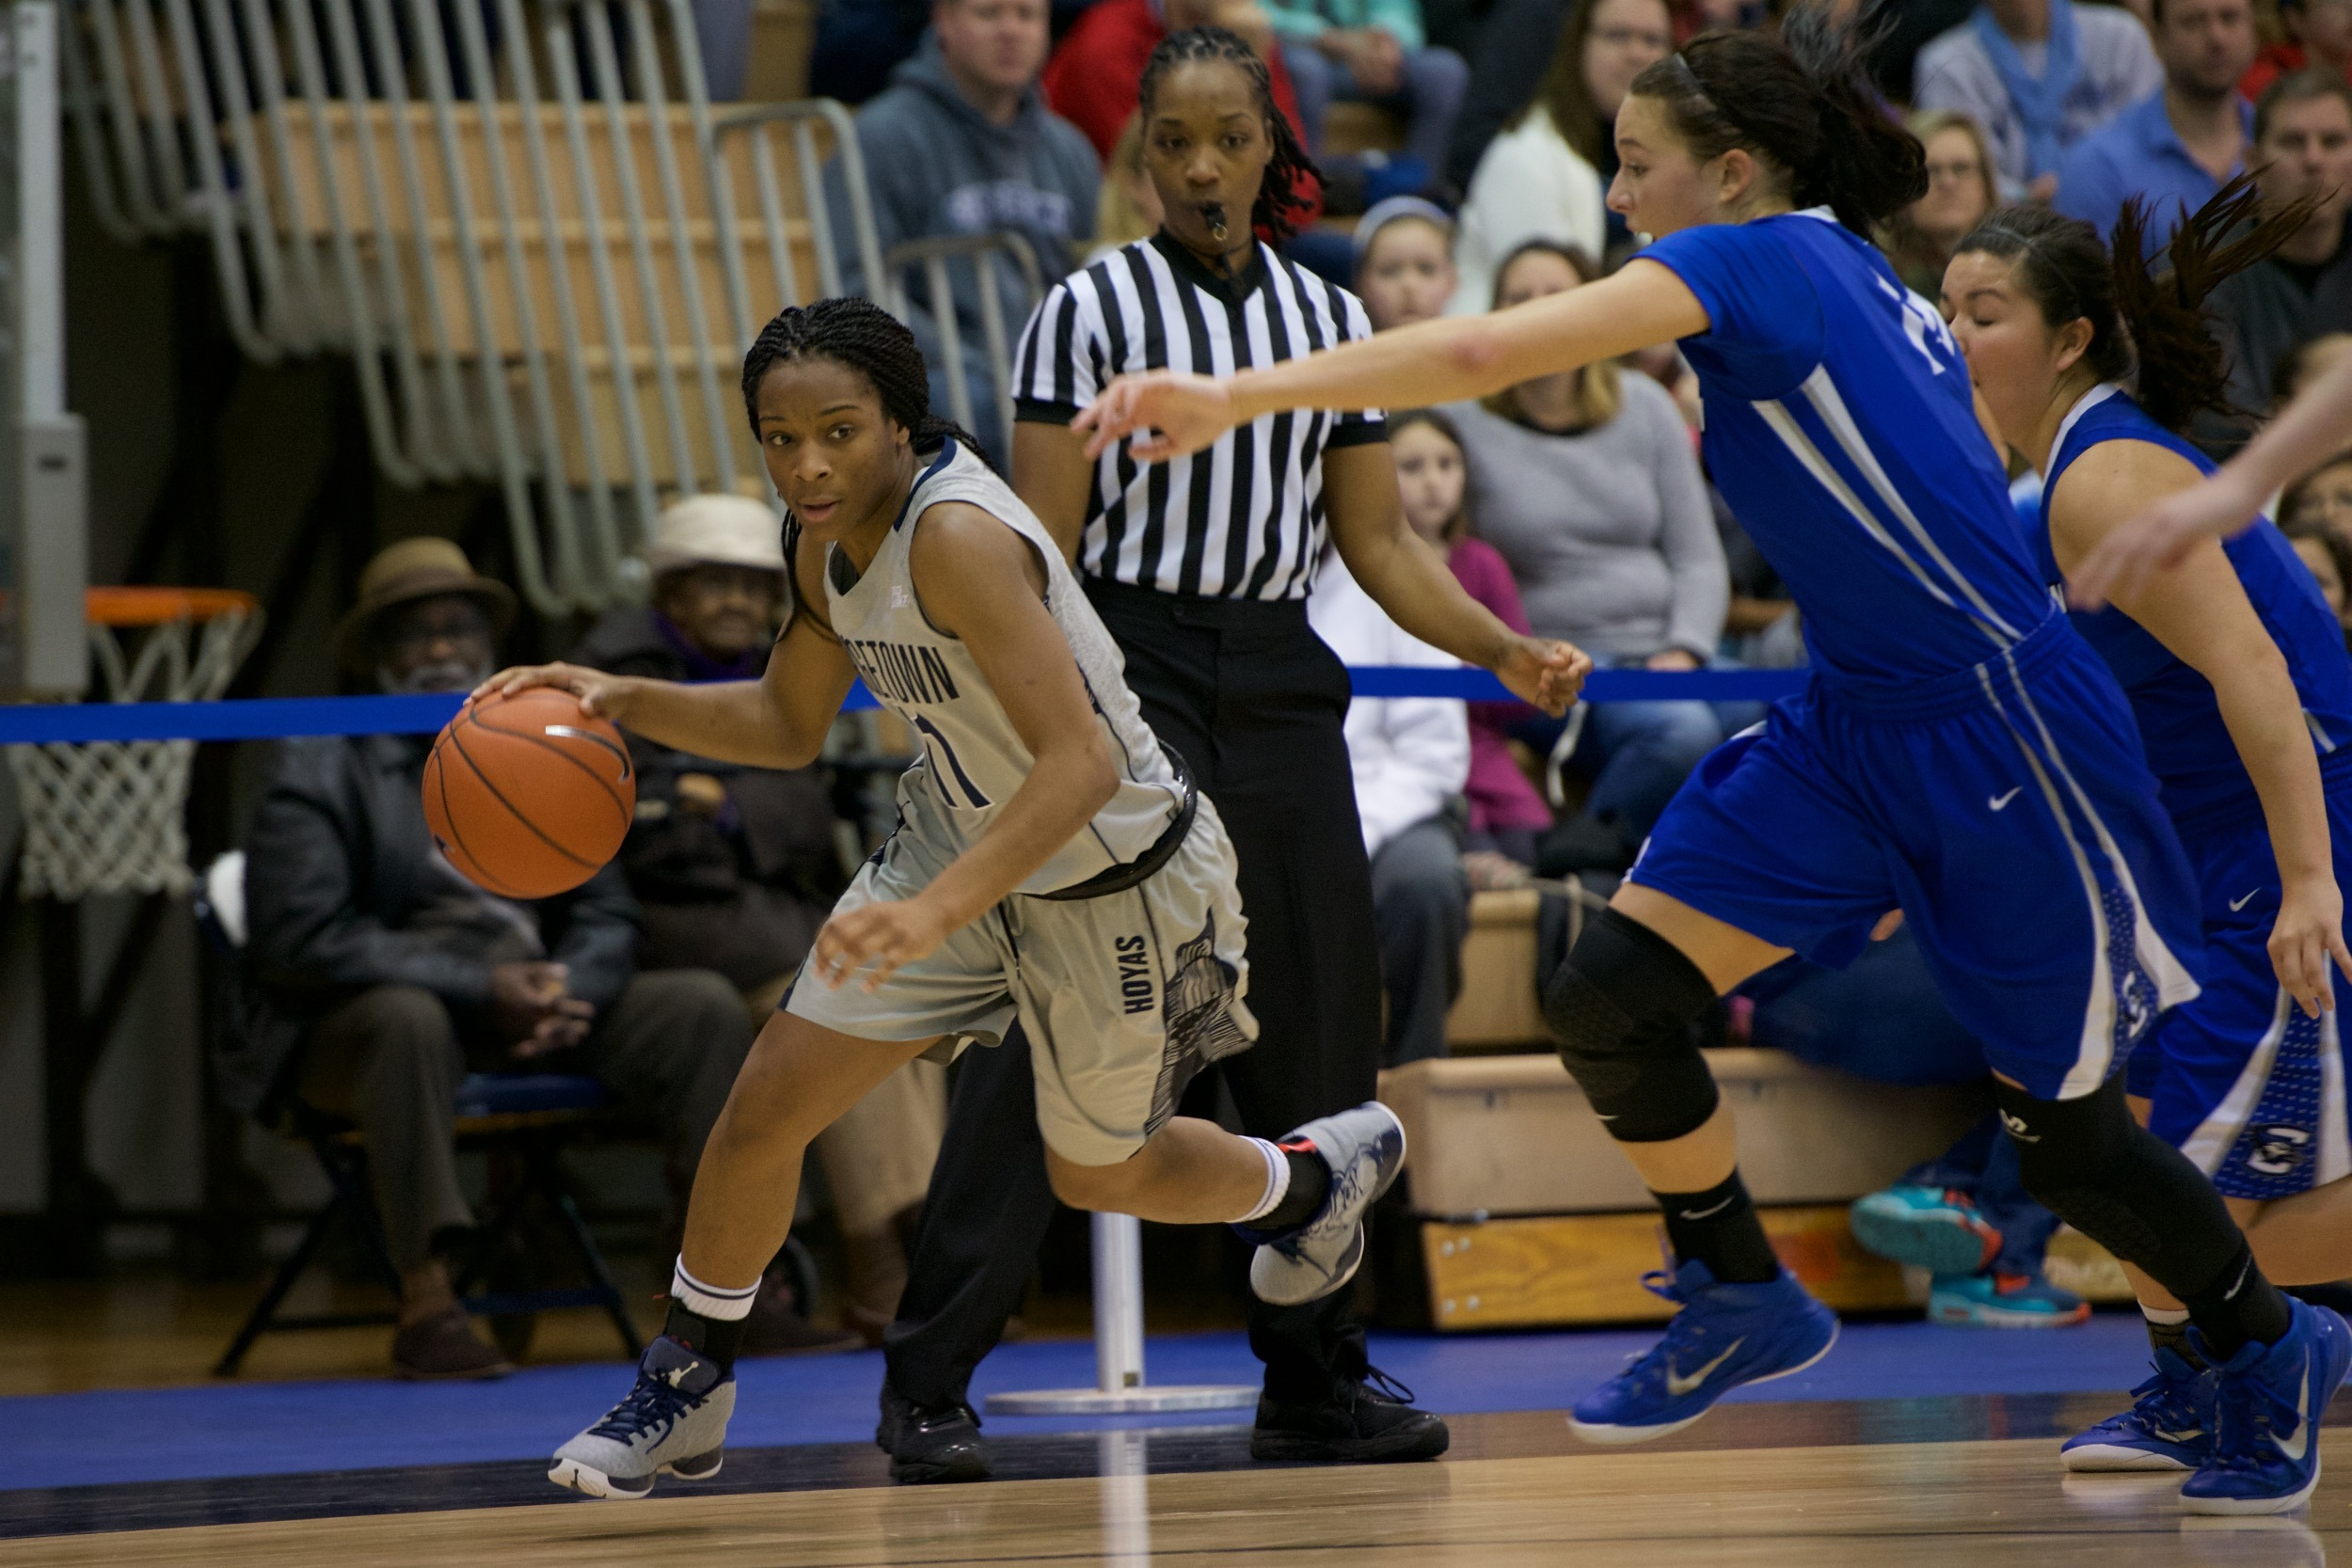 Dionna White led three Hoyas in double figures, tying a career high with 22 points